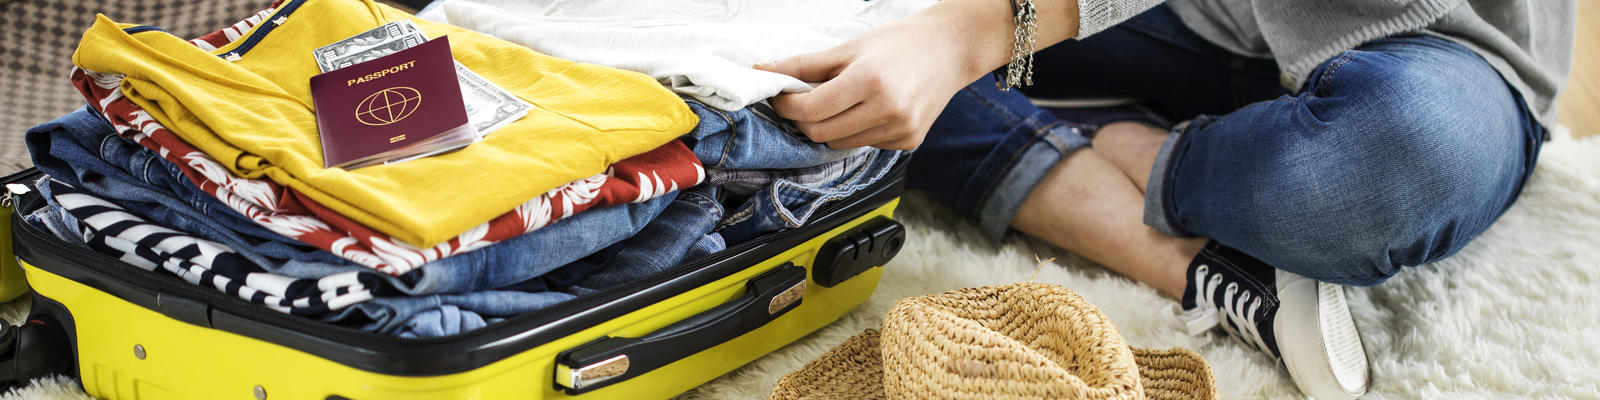 Packing For Your Next Cruise (Photo: sebra/Shutterstock)